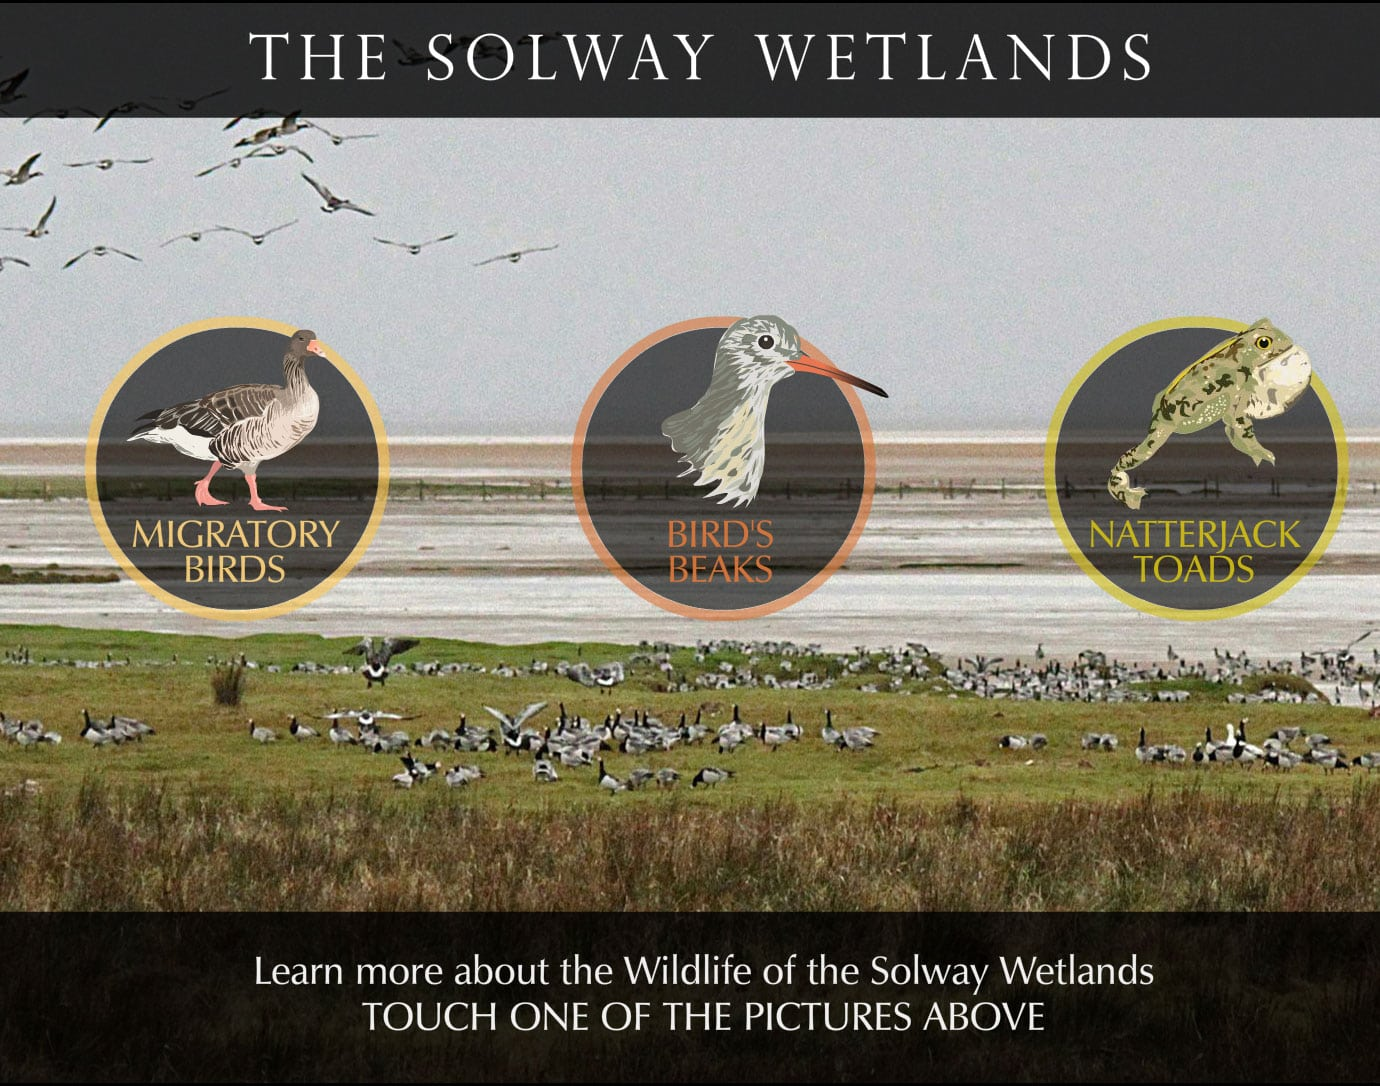 solway wetlands touchscreen interactive